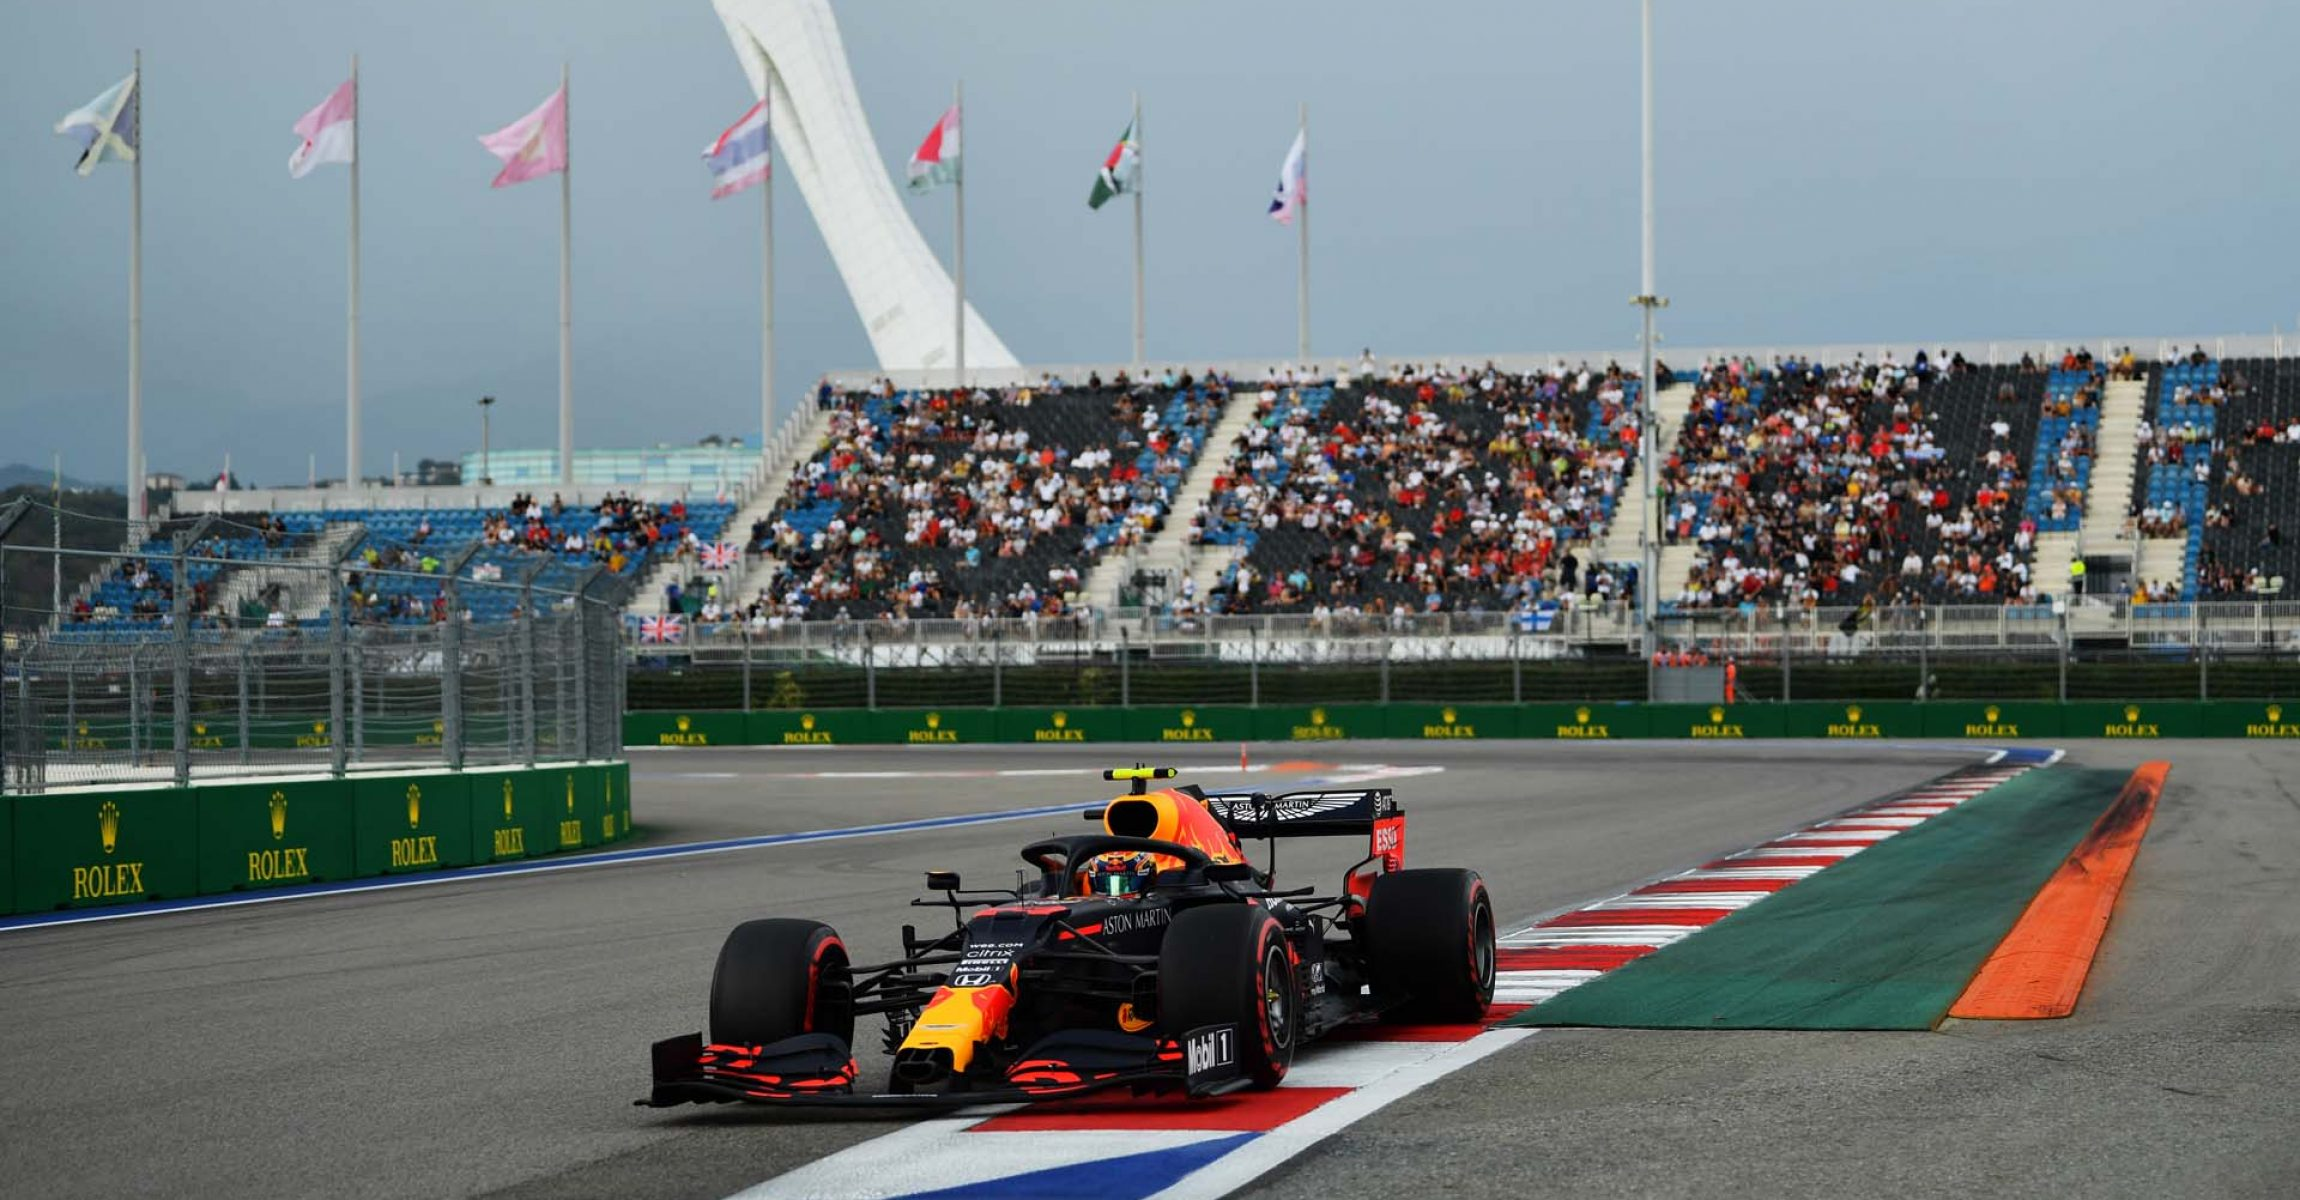 SOCHI, RUSSIA - SEPTEMBER 26: Alexander Albon of Thailand driving the (23) Aston Martin Red Bull Racing RB16 on track during qualifying ahead of the F1 Grand Prix of Russia at Sochi Autodrom on September 26, 2020 in Sochi, Russia. (Photo by Dan Mullan/Getty Images)